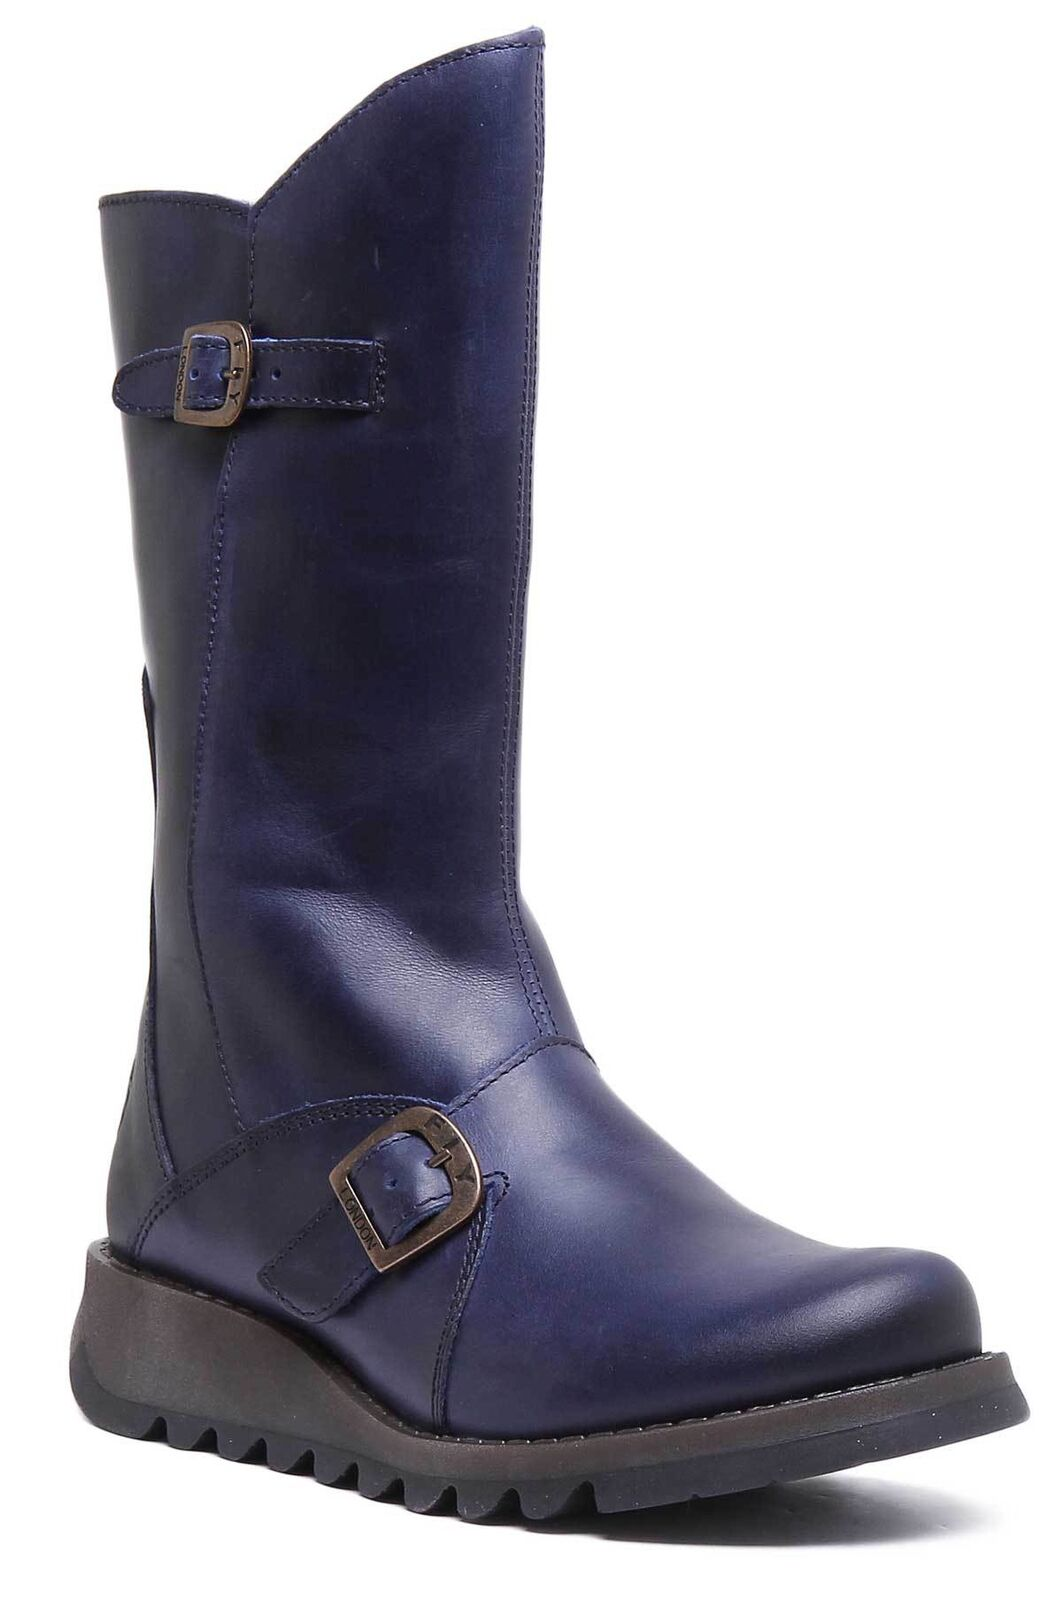 FLY London LINEA Mes 2 LINEA London STIVALI DONNA STIVALI LINEA IN PELLE MATT BLU   004201